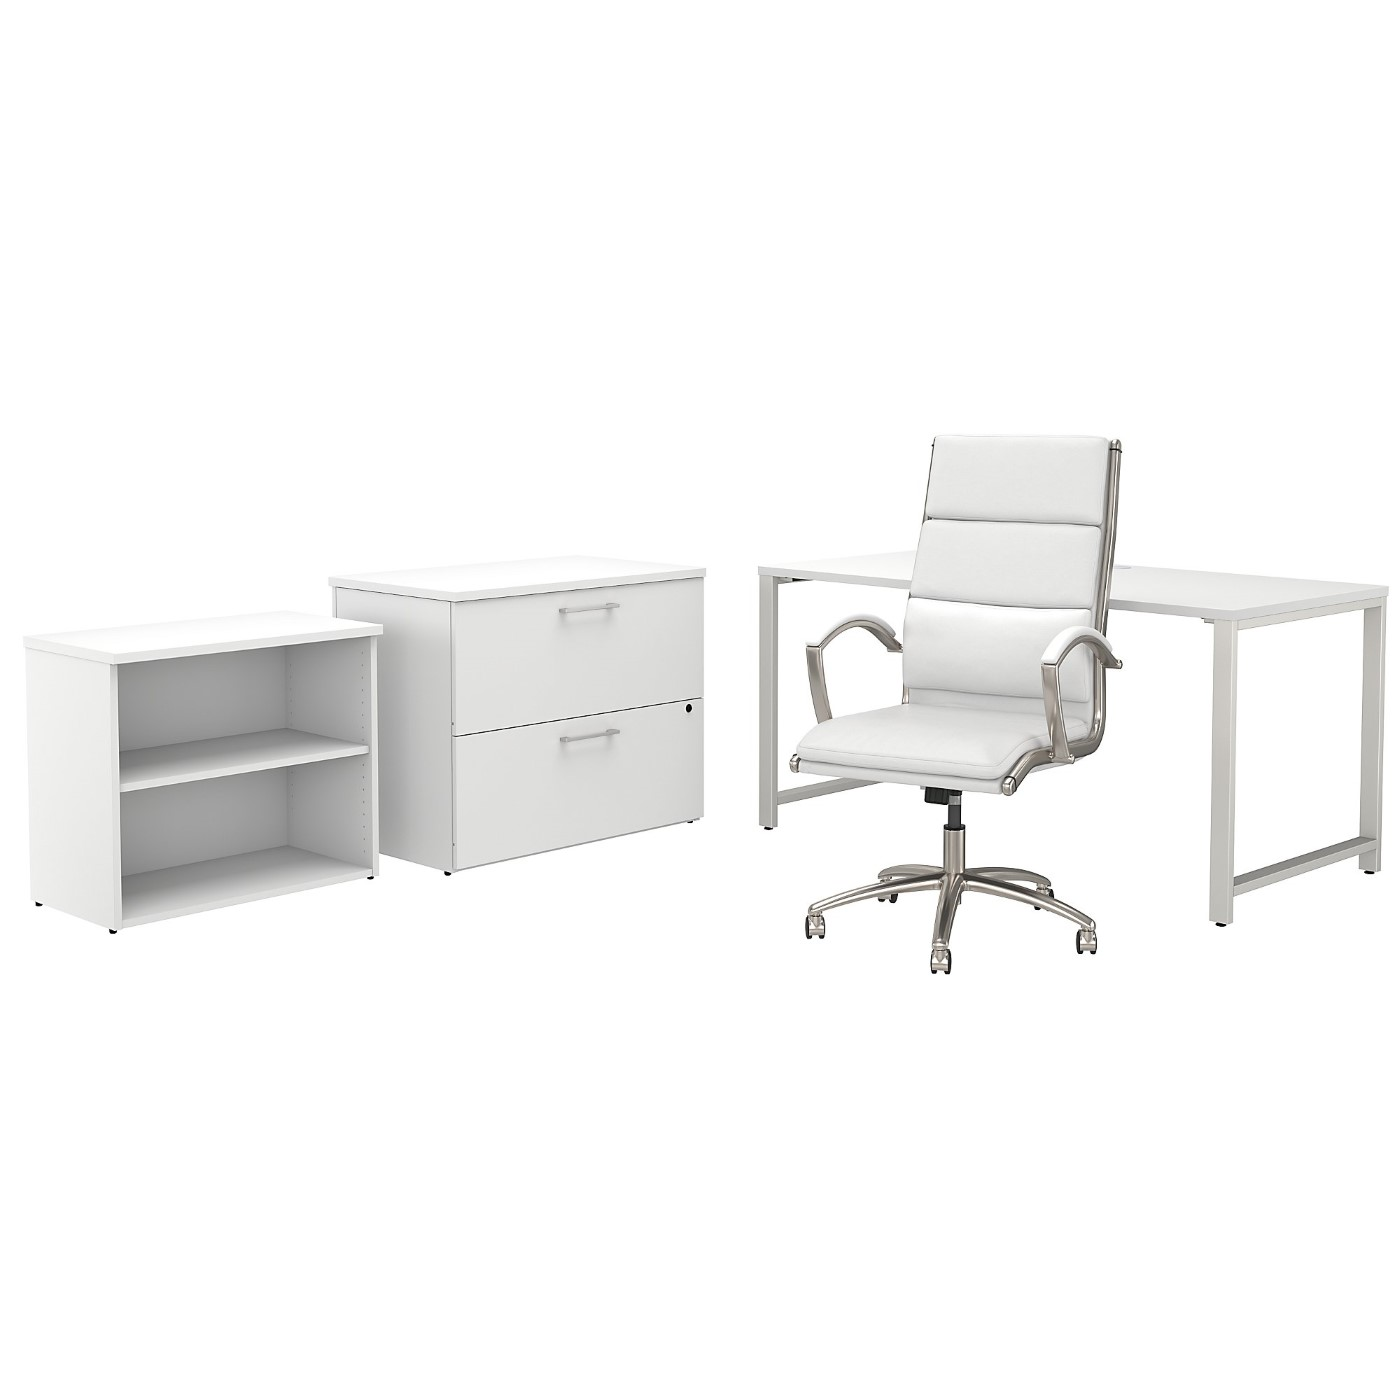 BUSH BUSINESS FURNITURE 400 SERIES 60W X 30D TABLE DESK AND CHAIR SET WITH STORAGE. FREE SHIPPING SALE DEDUCT 10% MORE ENTER '10percent' IN COUPON CODE BOX WHILE CHECKING OUT.